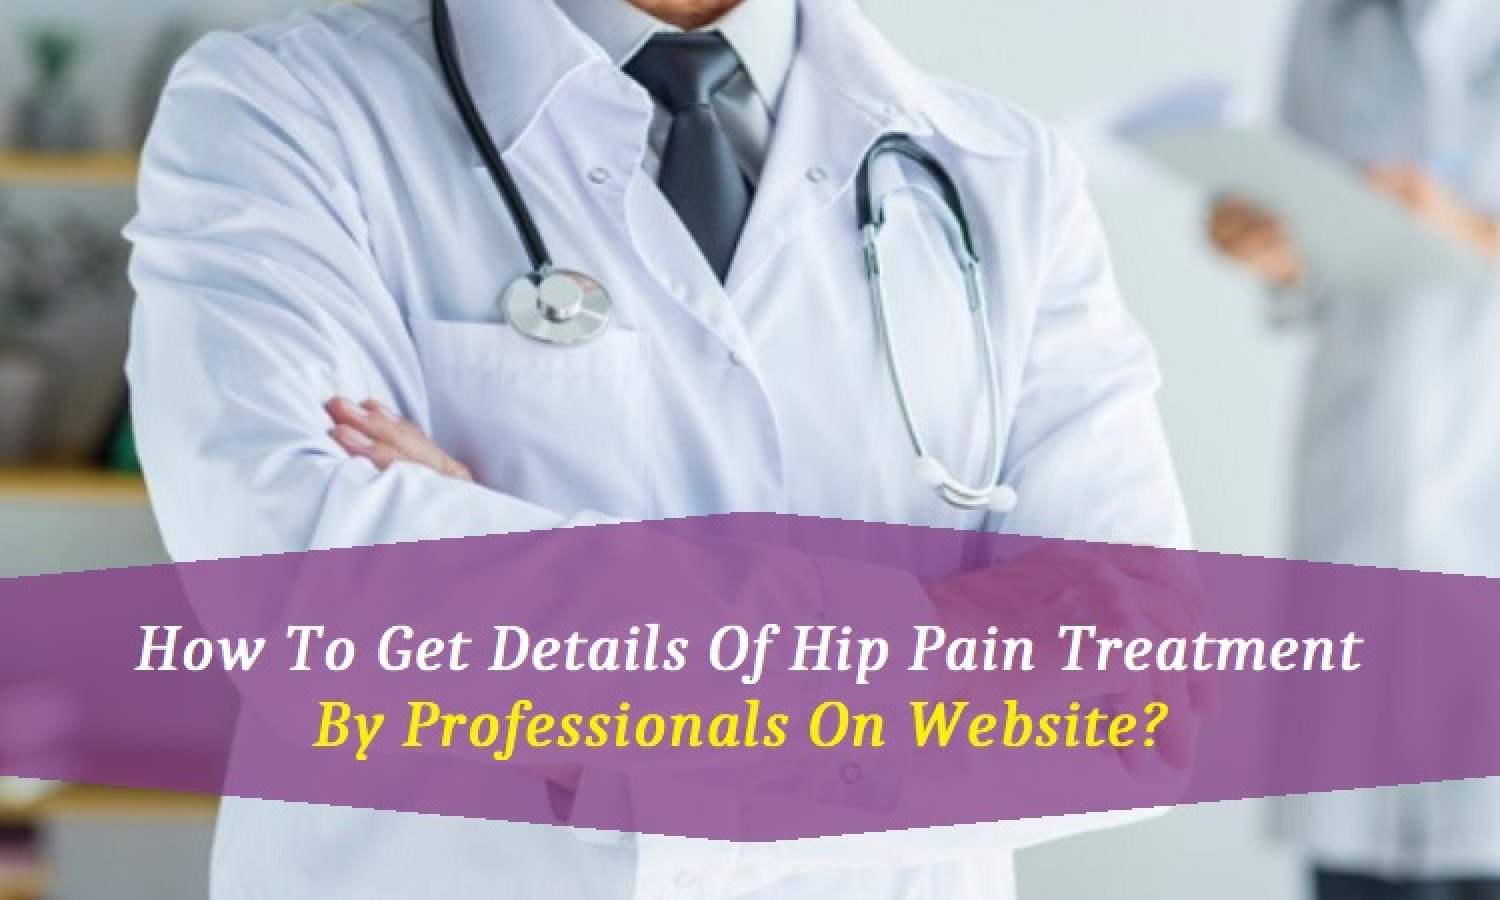 How To Get Details Of Hip Pain Treatment By Professionals On Website?  Infographic